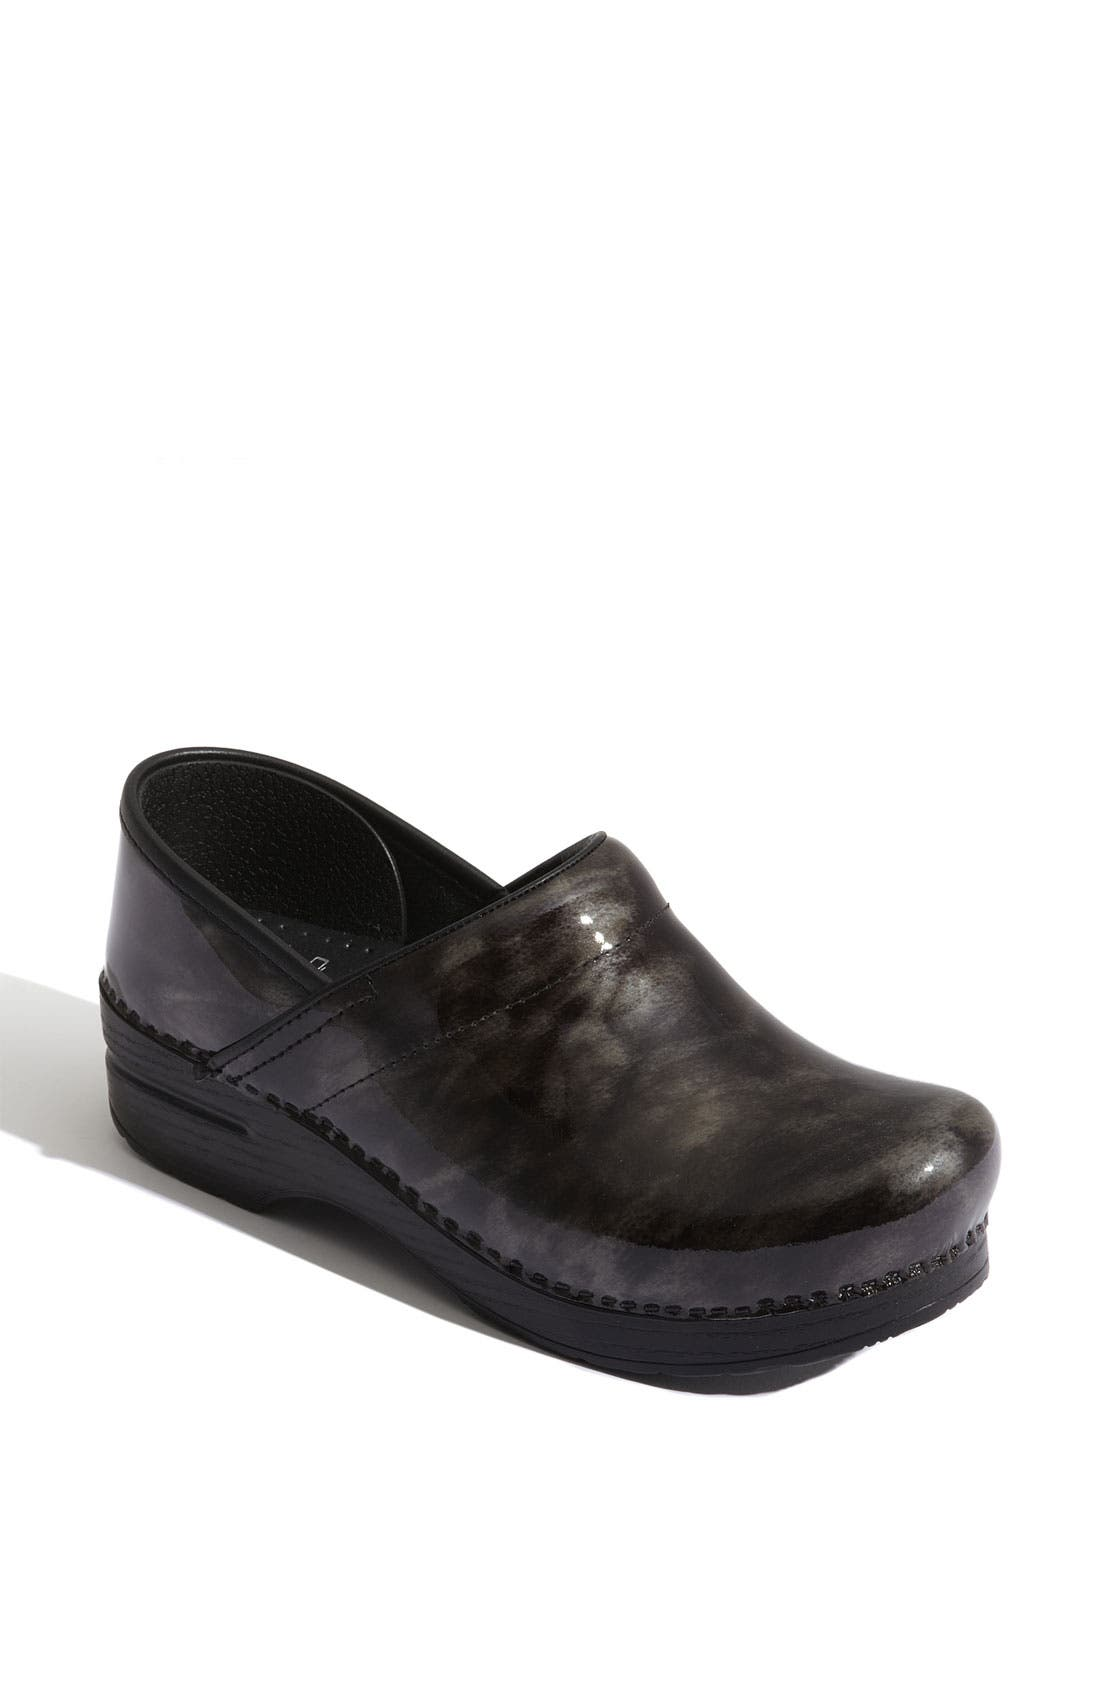 Main Image - Dansko 'Professional' Marbled Patent Leather Clog (Special Purchase)